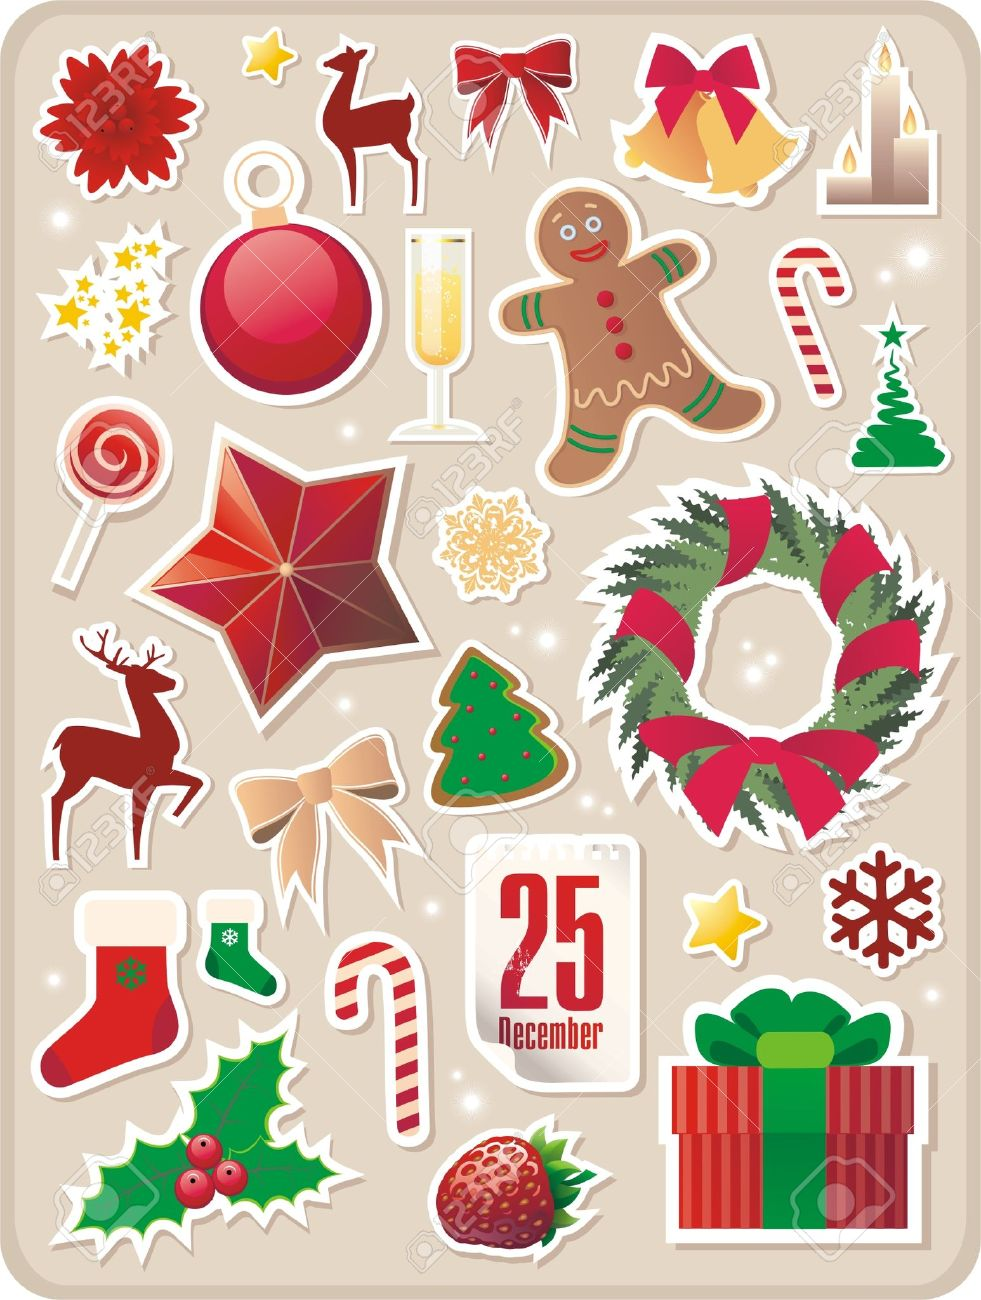 Christmas Stickers.Collection Of Cute Christmas Stickers For Your Design